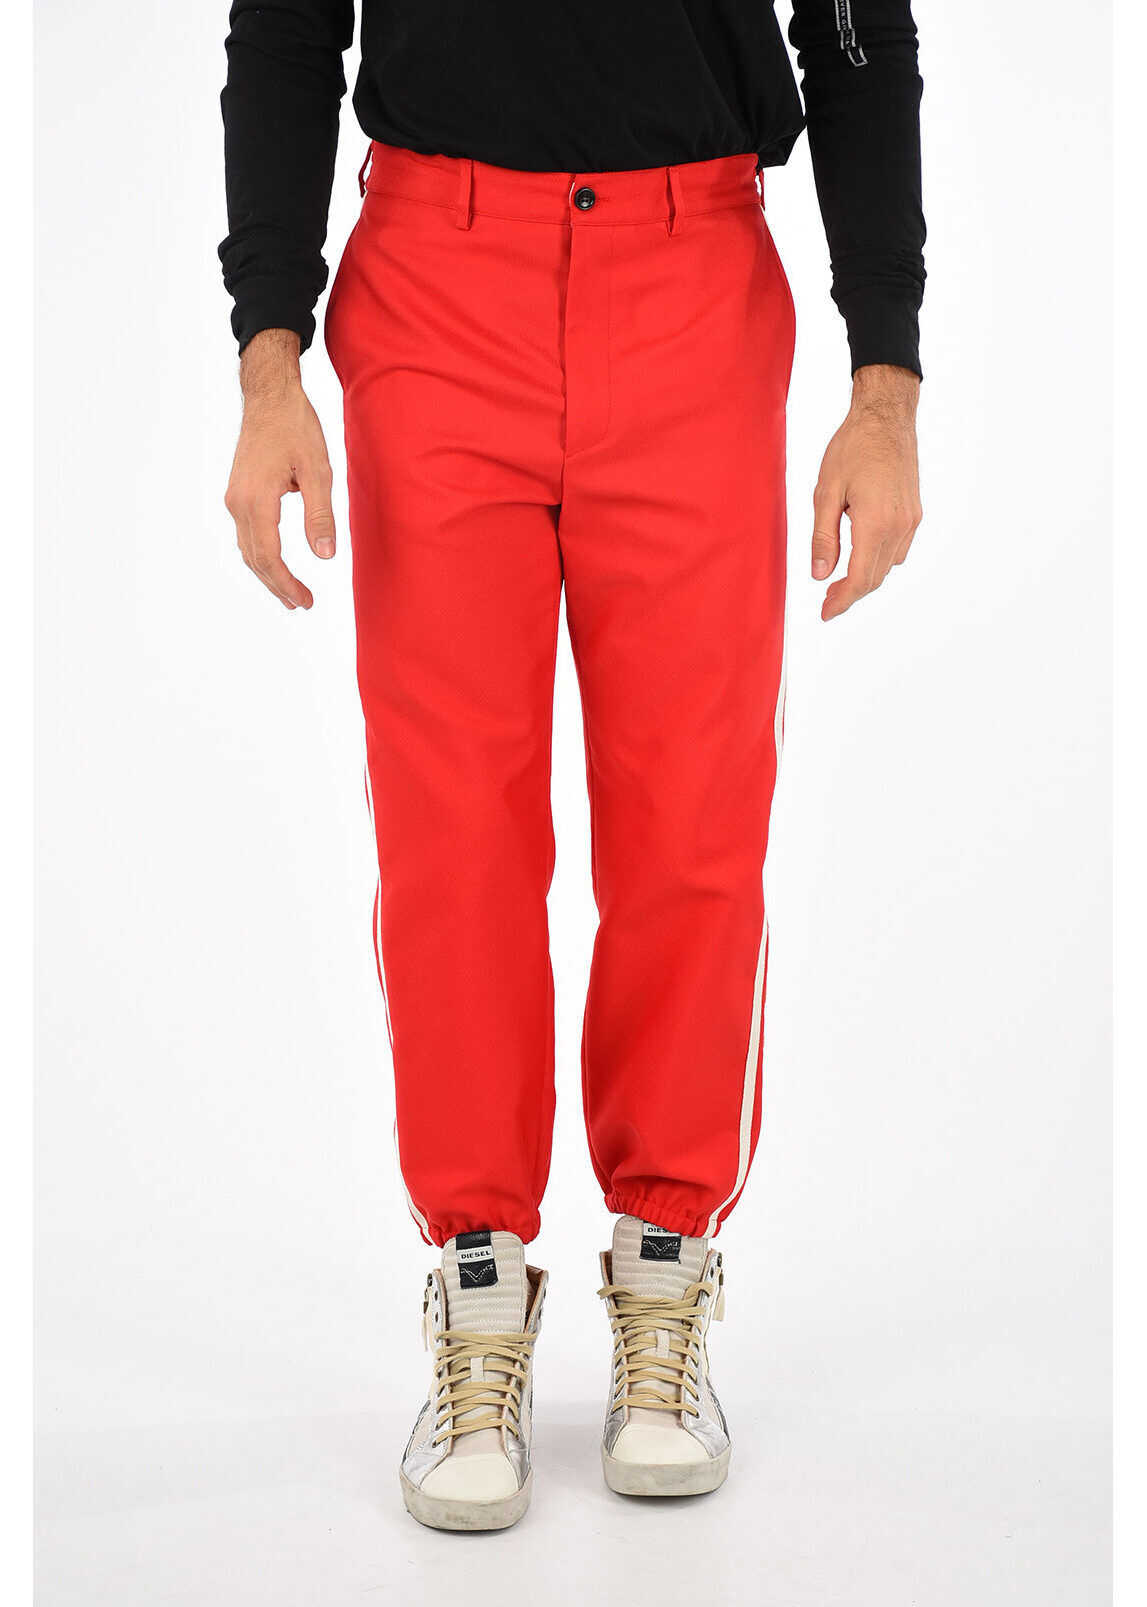 Gucci Embroidered Pants RED